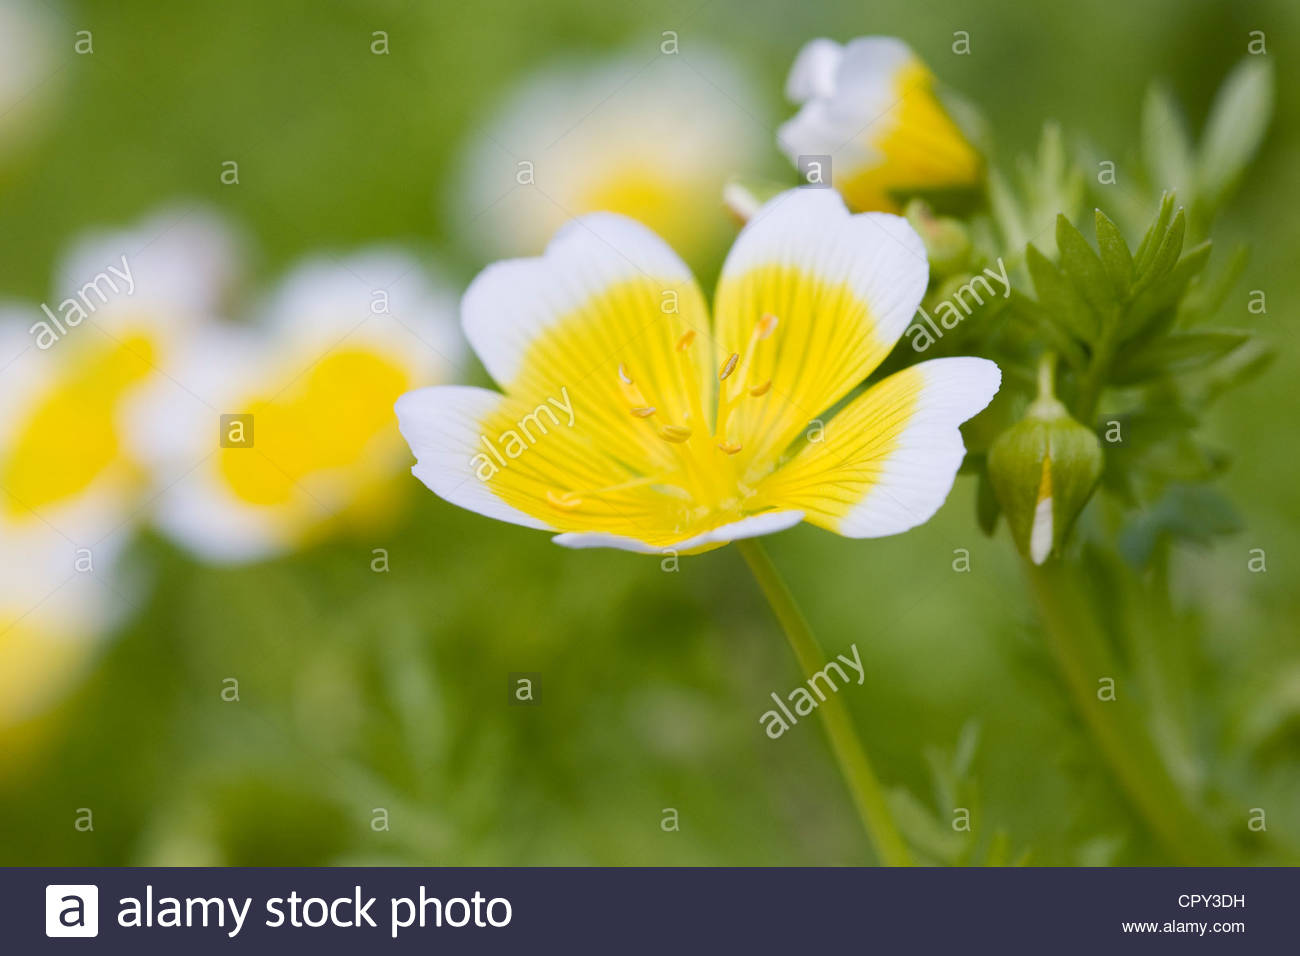 Close up of Limnanthes douglasii in the garden. Poached egg plant. - Stock Image